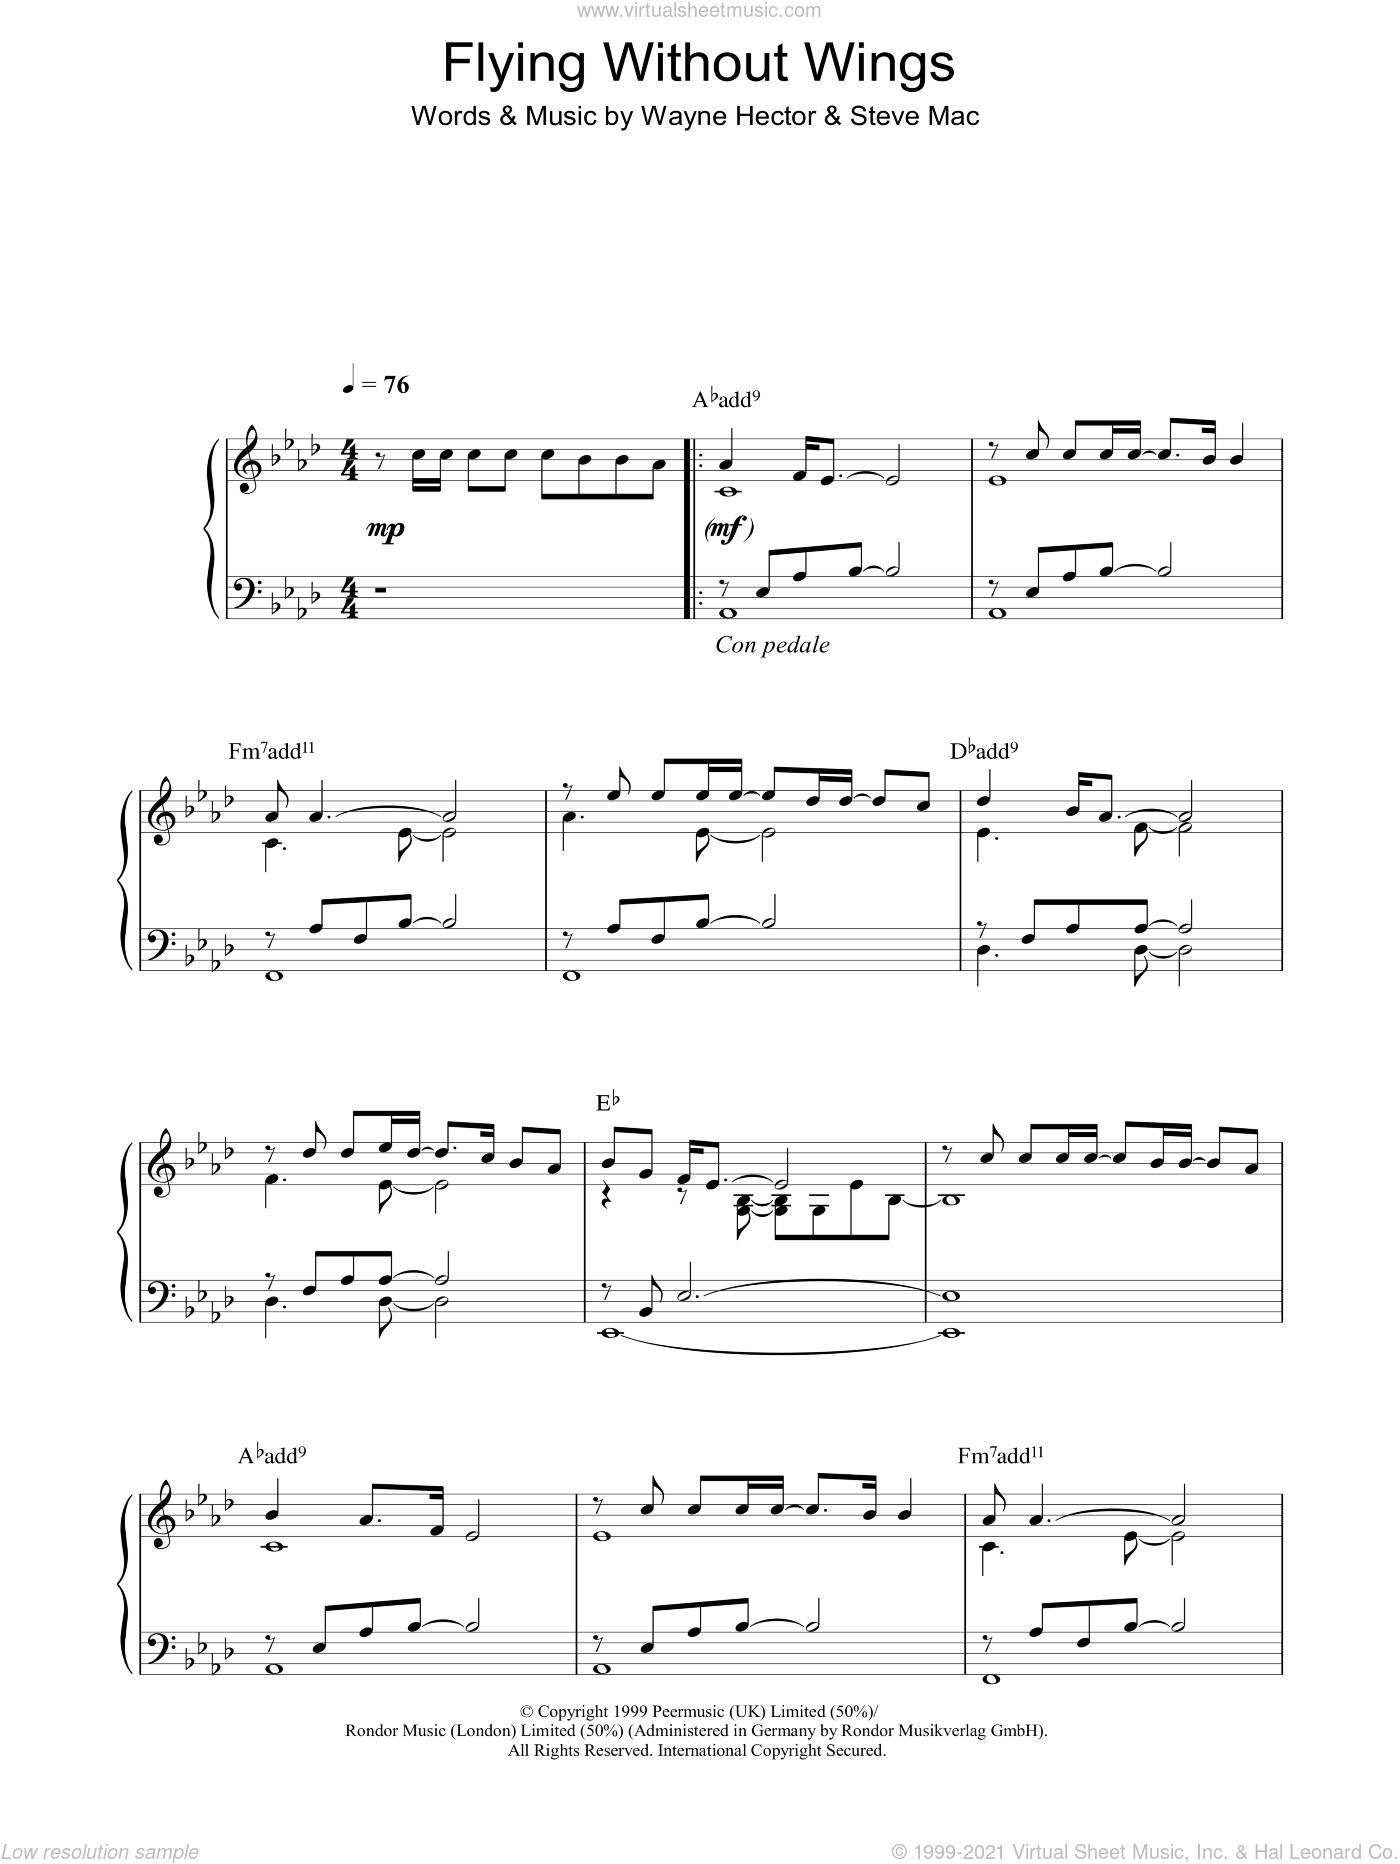 Flying Without Wings sheet music for piano solo by Steve Mac